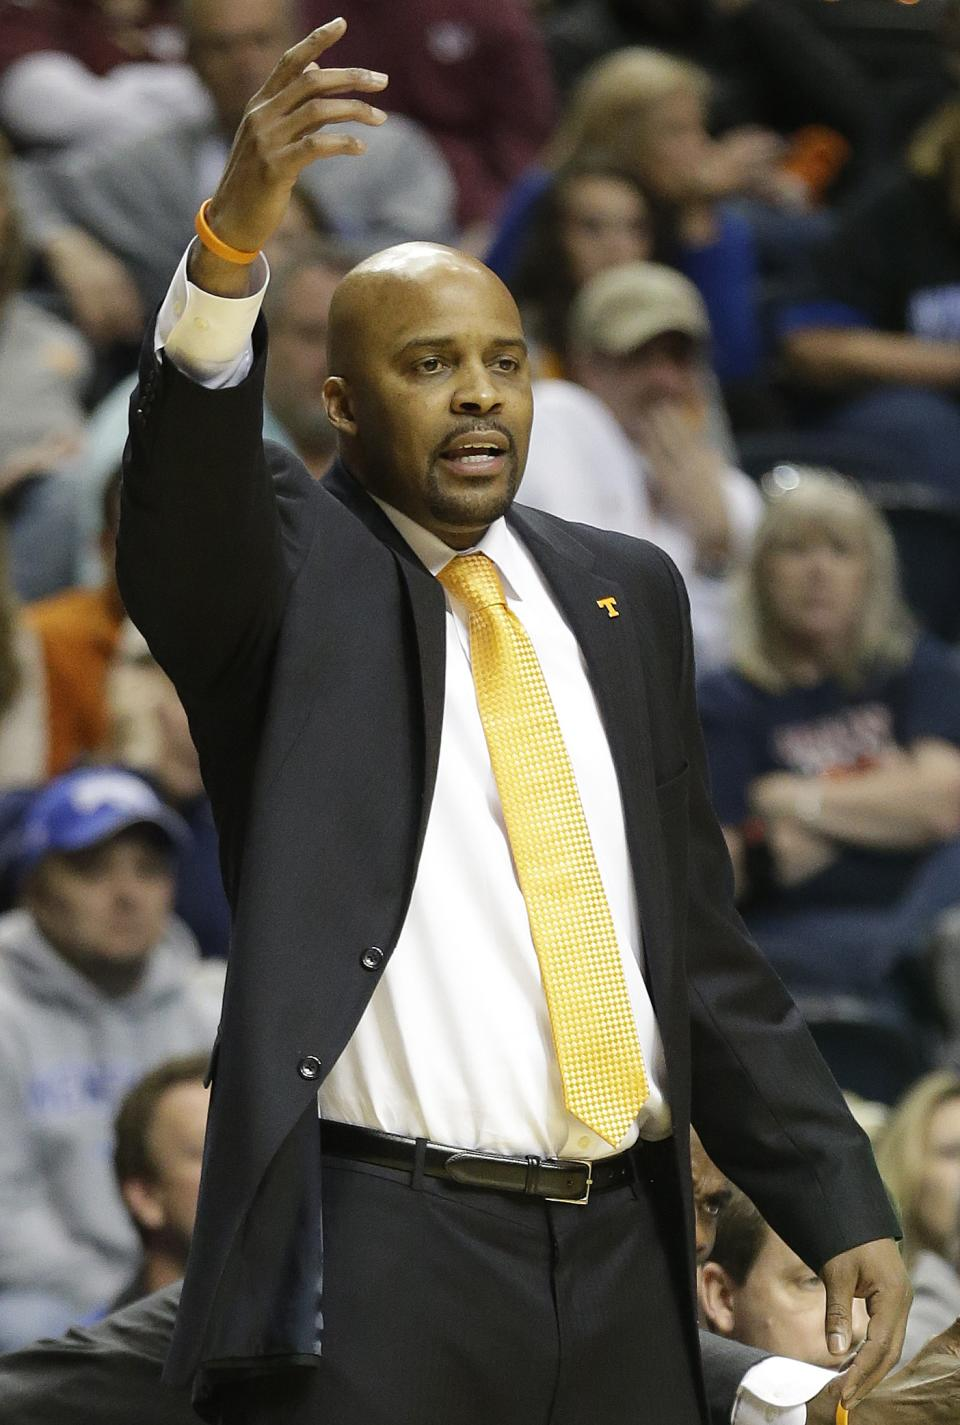 Tennessee head coach Cuonzo Martin watches play against the Mississippi State during the first half of an NCAA college basketball game at the Southeastern Conference tournament, Thursday, March 14, 2013, in Nashville, Tenn. (AP Photo/John Bazemore)